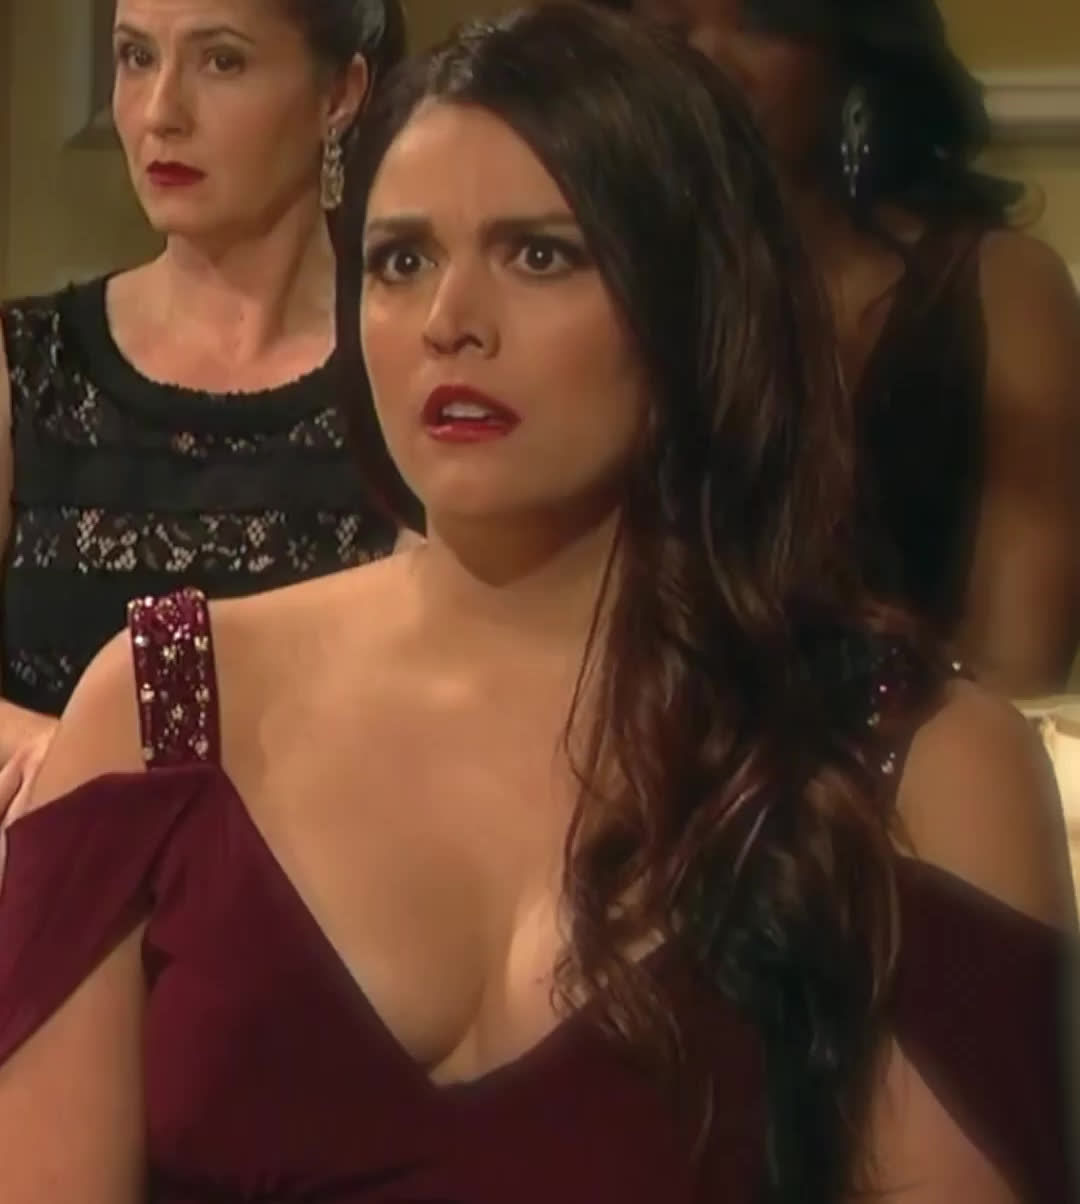 Cecily strong nude photos leaked online